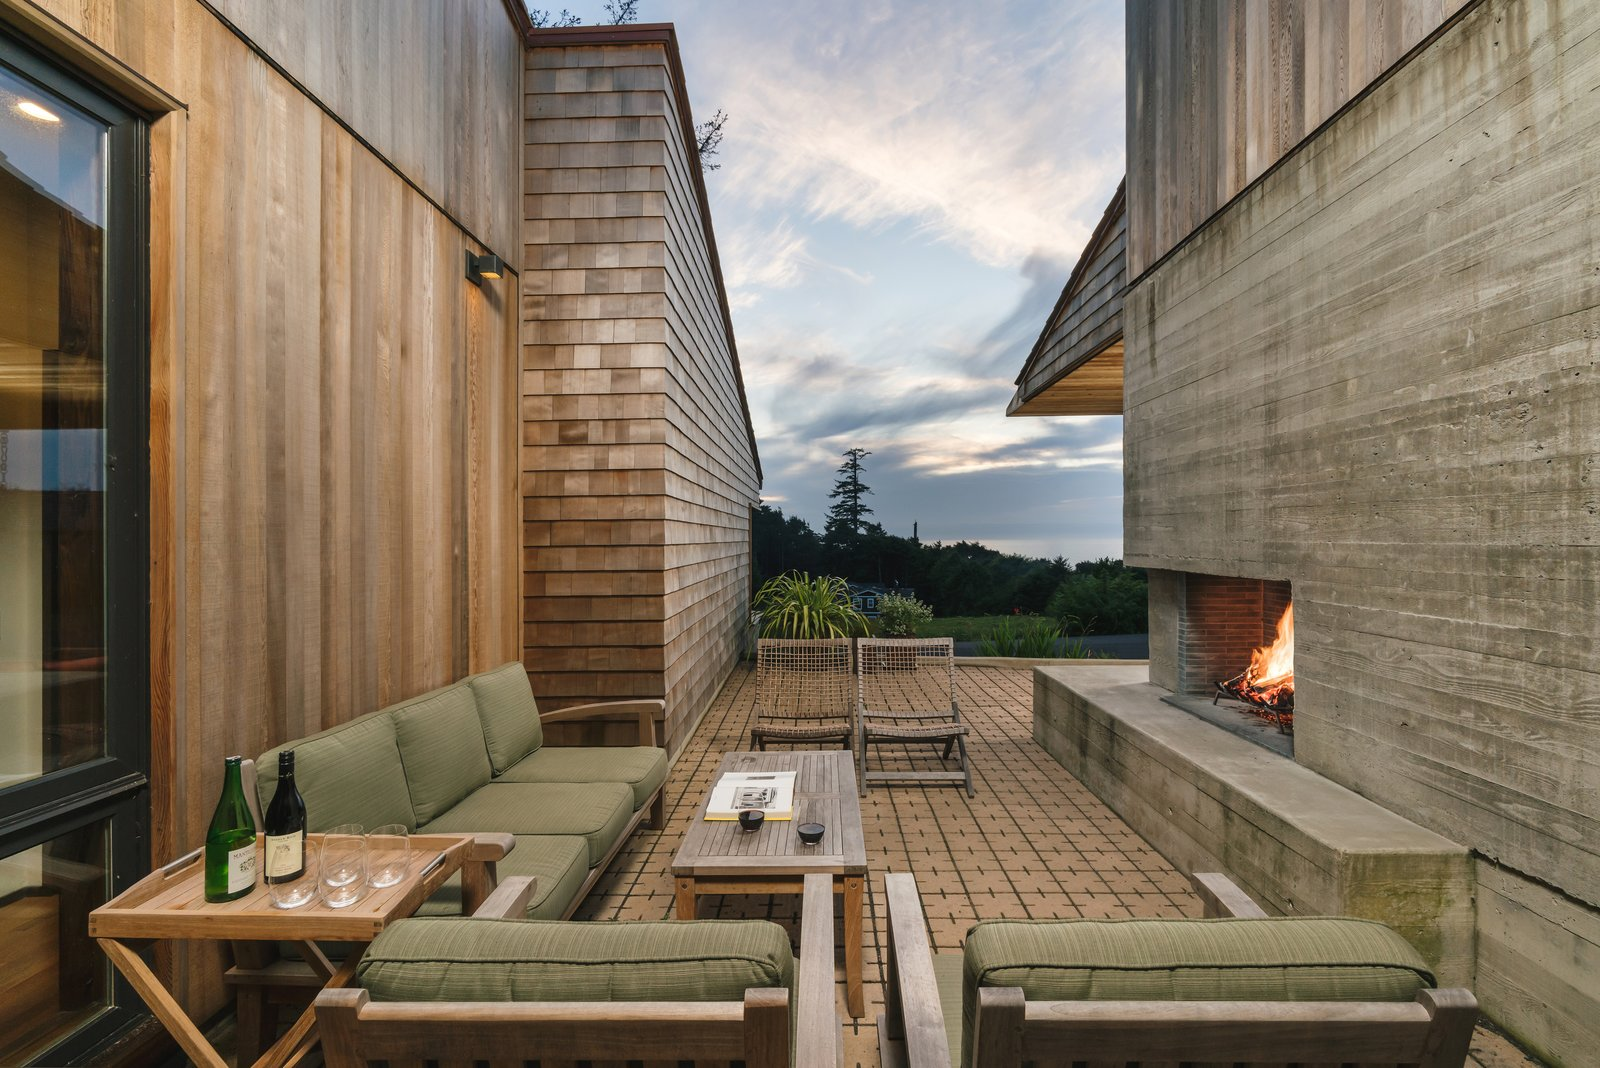 Arch Cape Residence by Colab Architecture + Design courtyard with outdoor fireplace